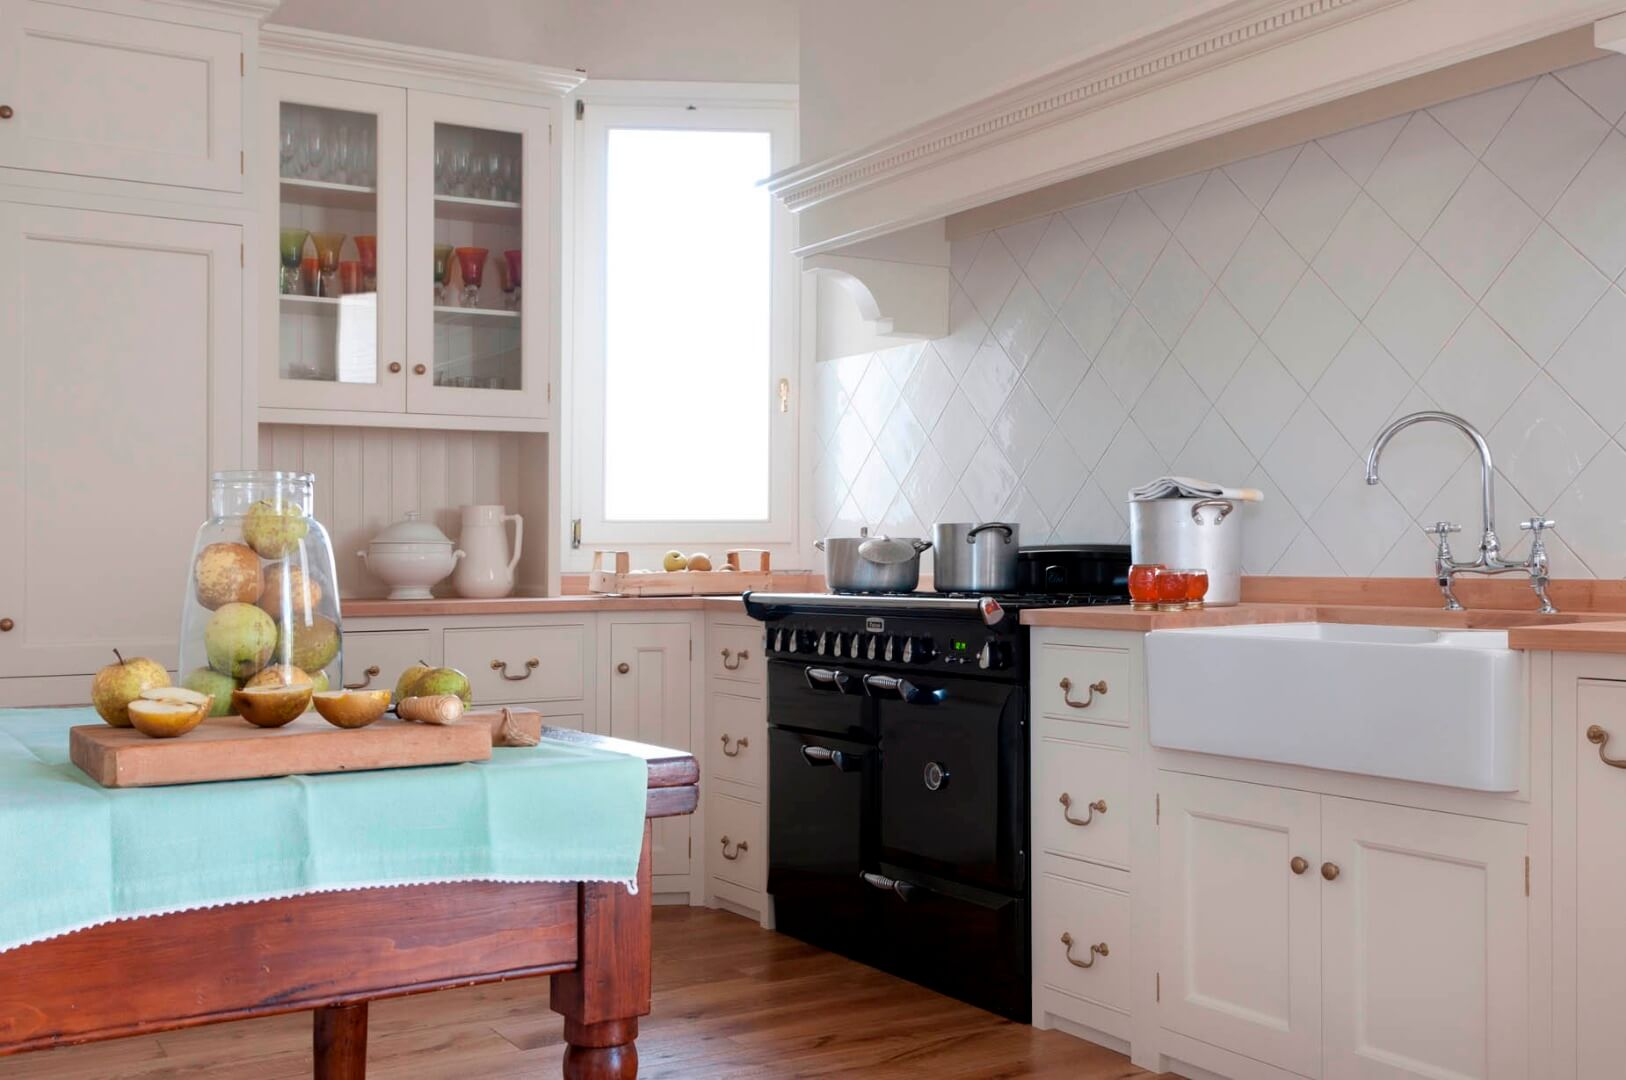 Cucina A Gas Stile Country La Classica Cucina Country In Stile Inglese Georgiano